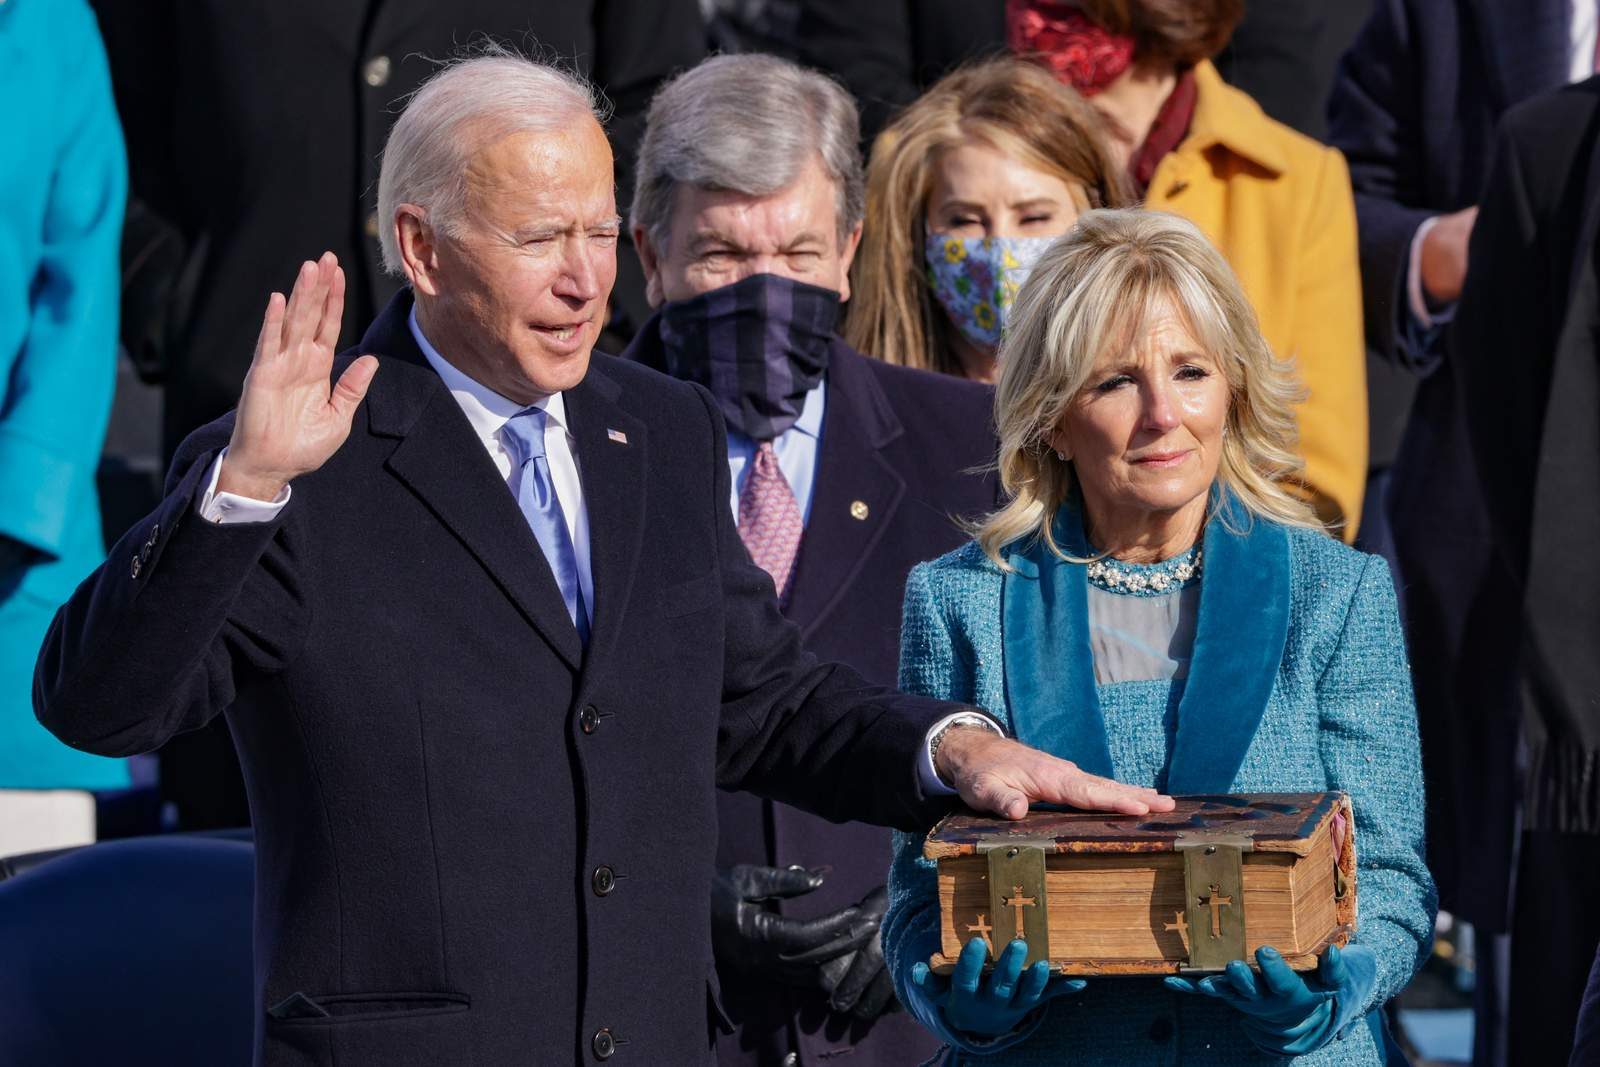 Joe Biden is sworn in as U.S. President during his inauguration on the West Front of the U.S. Capitol on January 20, 2021 in Washington, DC. (Photo by Alex Wong/Getty Images)